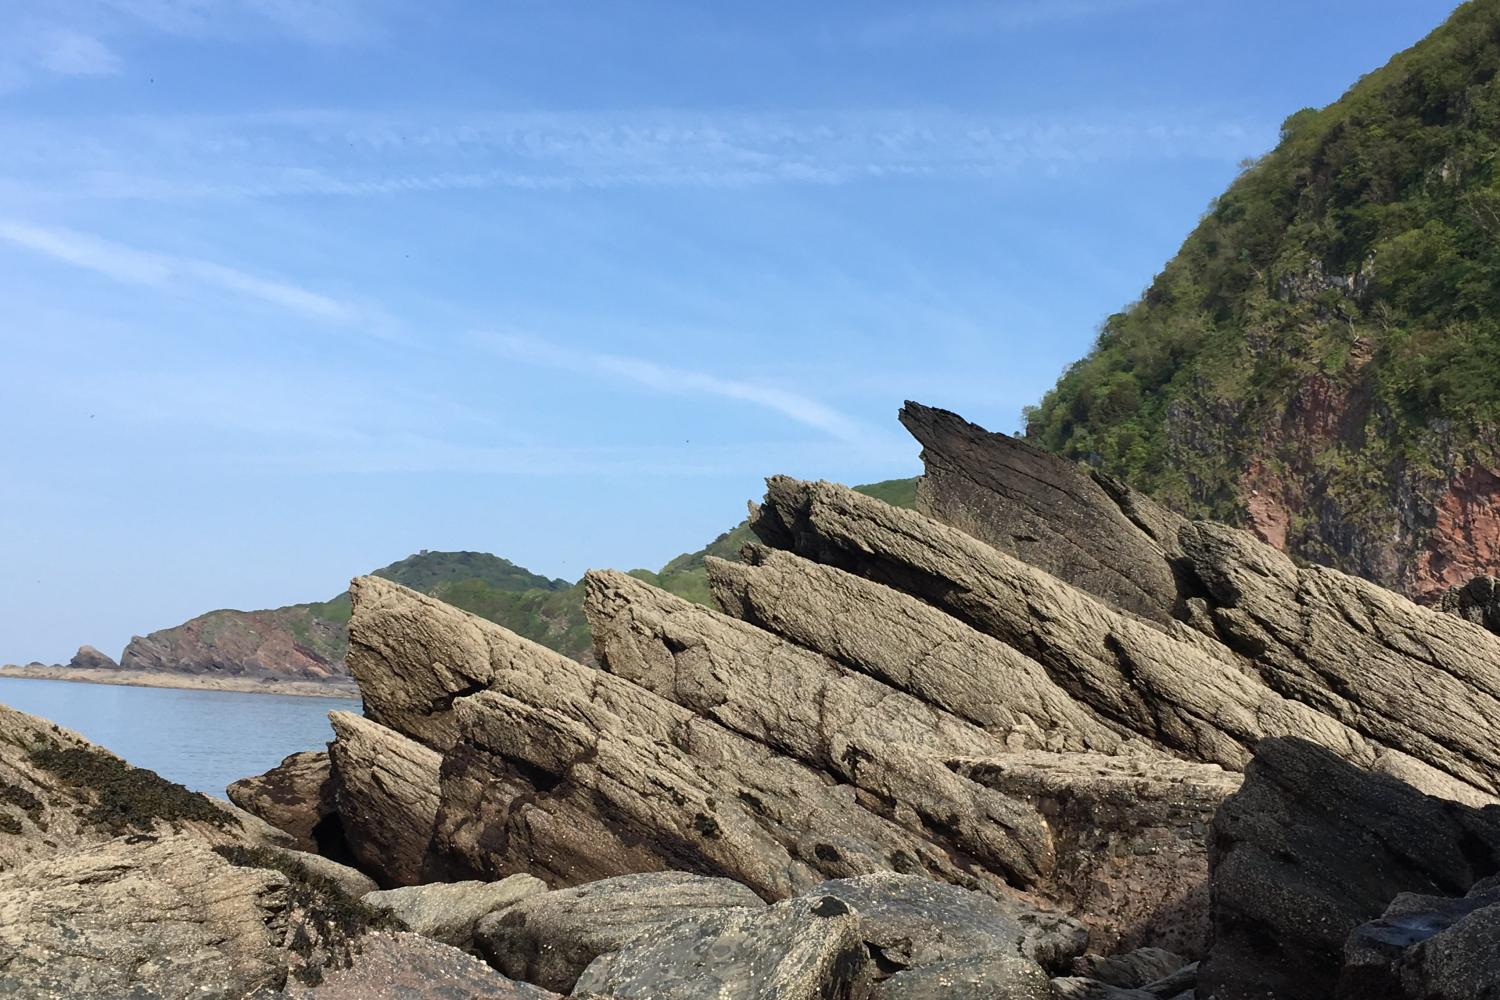 Wringcliff Rocks, stunning walk down to the sandy beach when tide is out! Tide timetable available in the cottage.